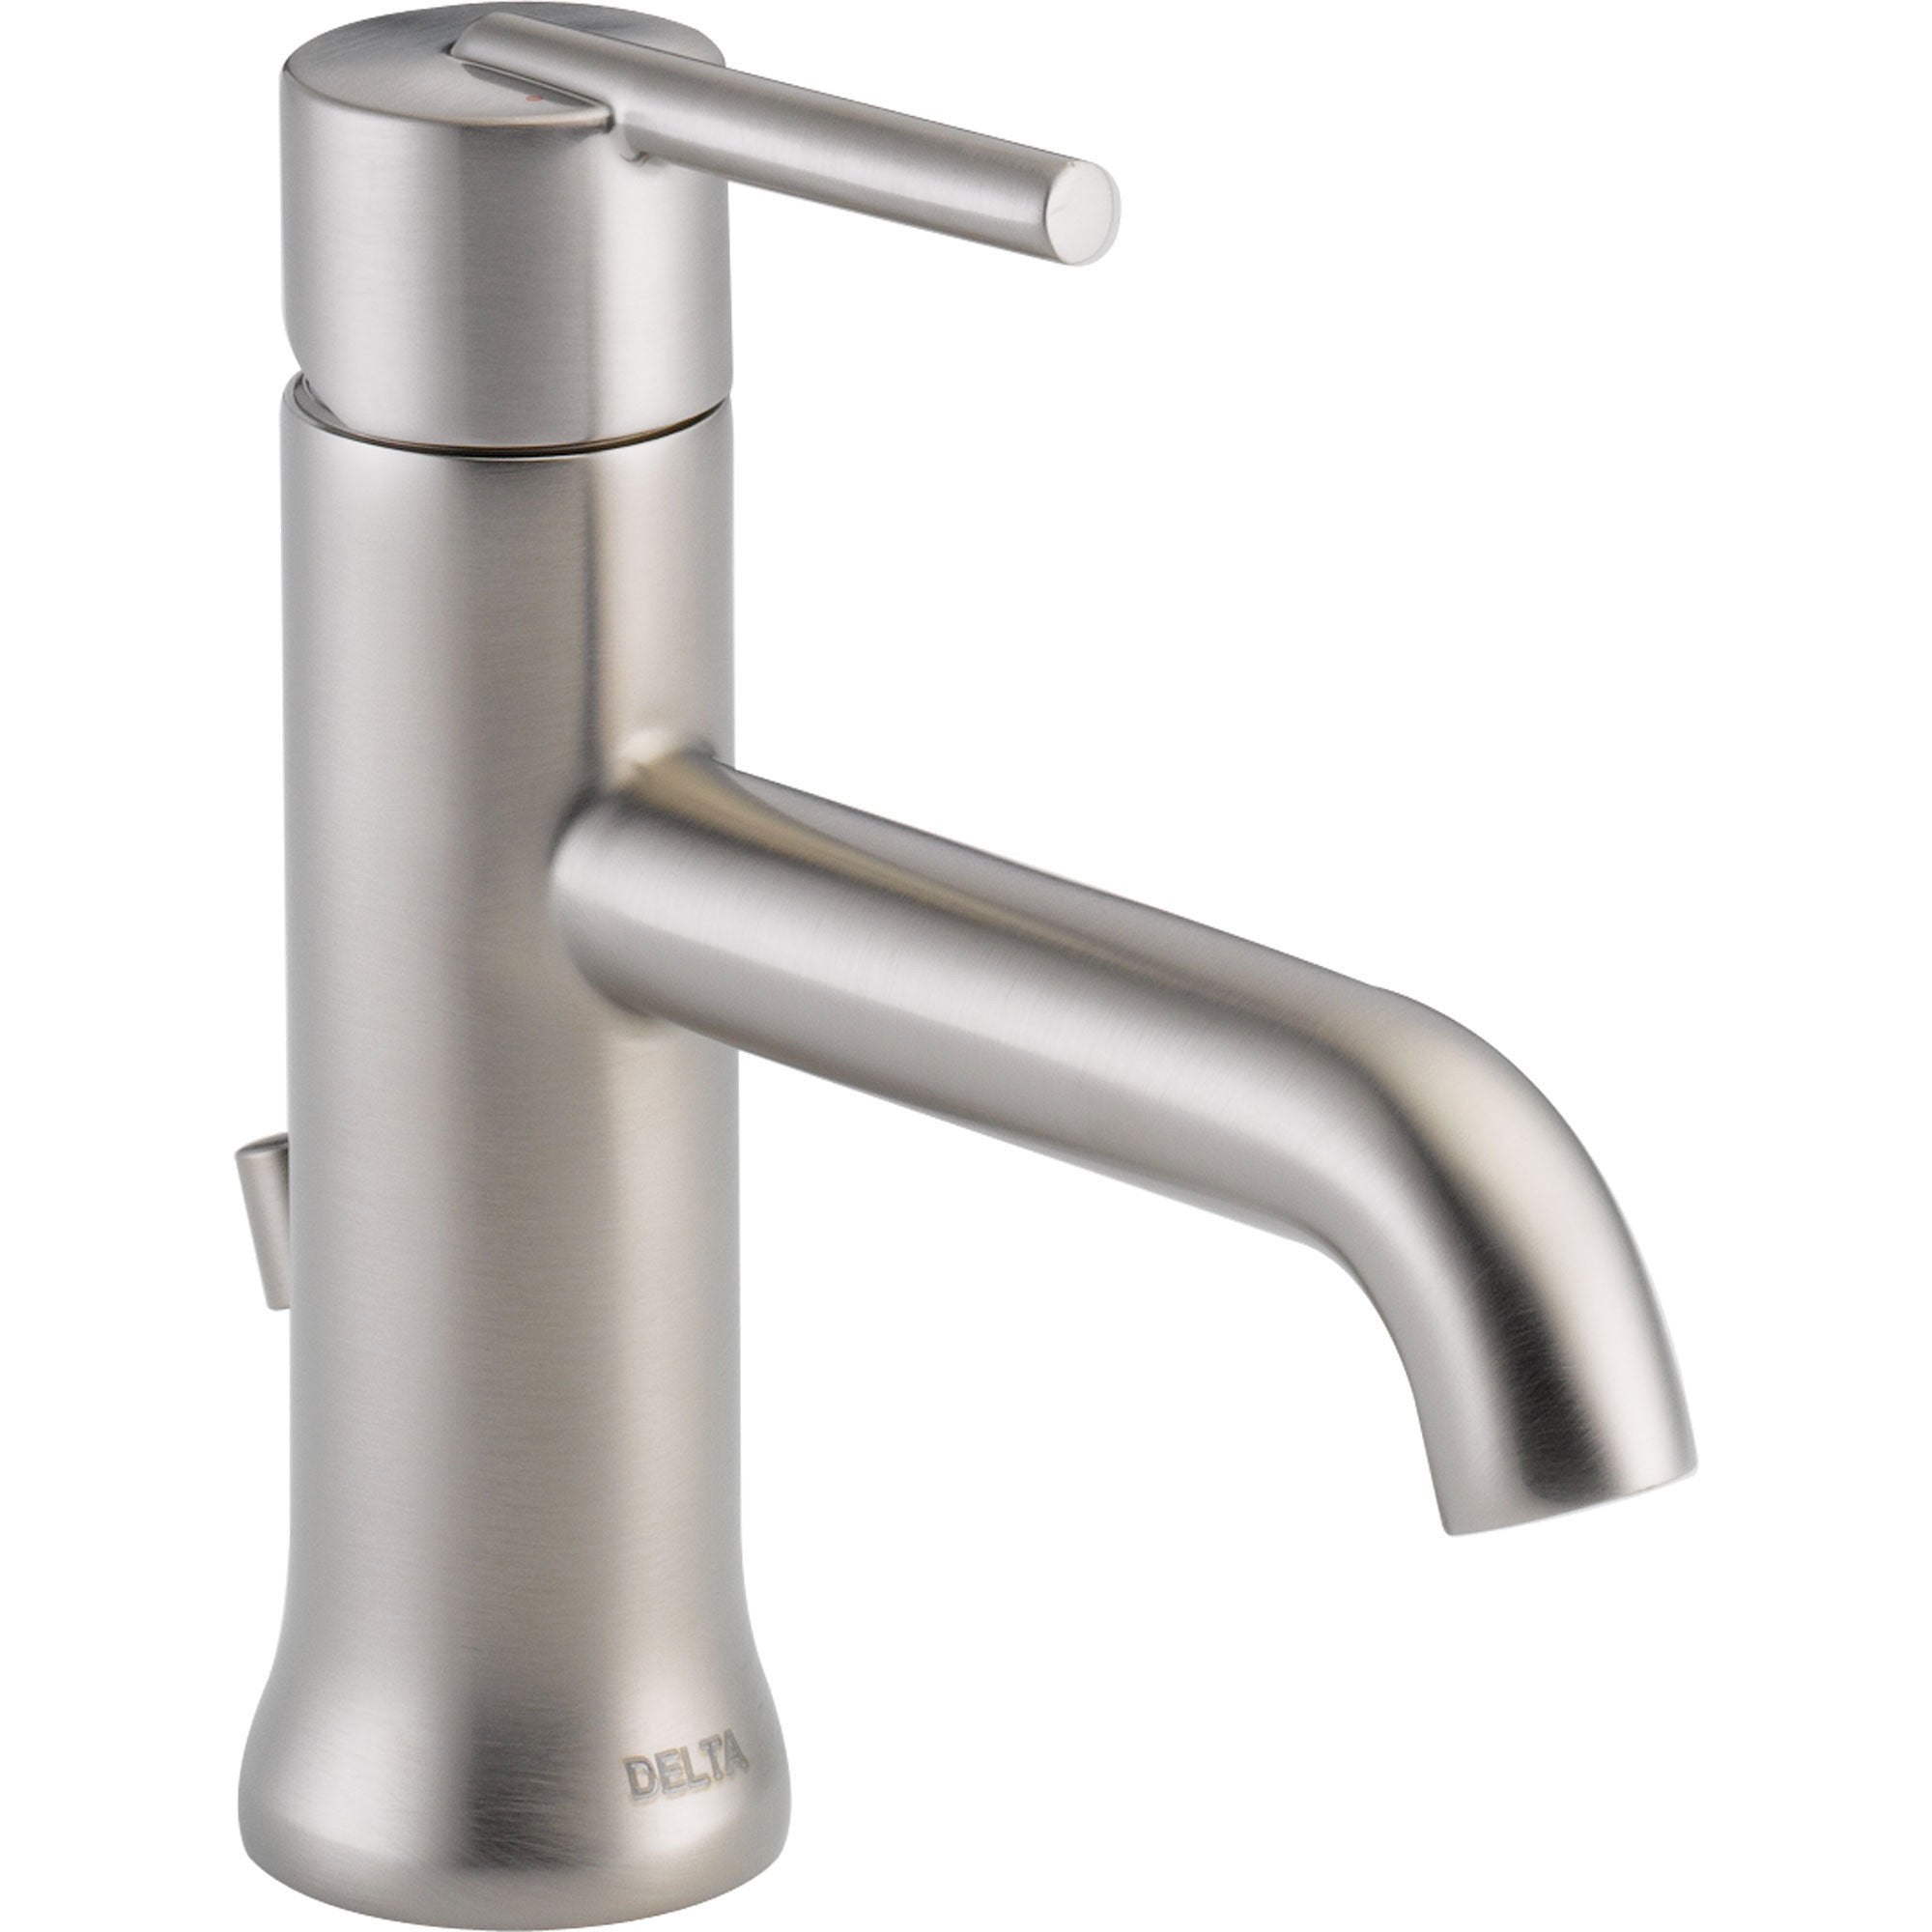 Delta Trinsic Modern Single Handle Stainless Steel Finish Bathroom Faucet 590138